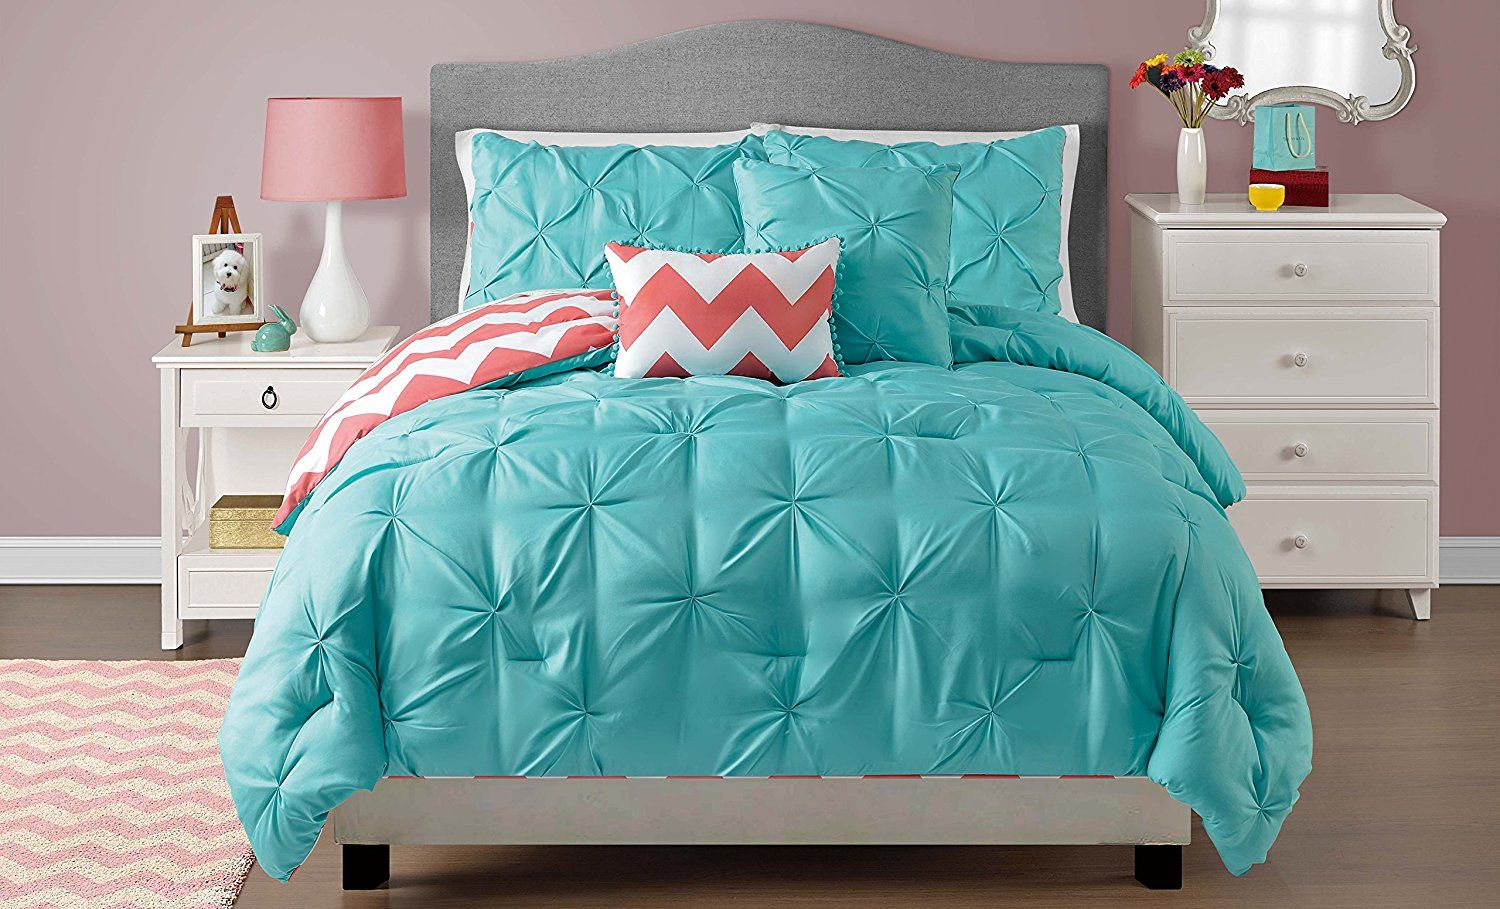 1a9feca7d4e6 DelbouTree Charcoal Gray Turquoise Bedding Sets Sale | Ease Bedding ...